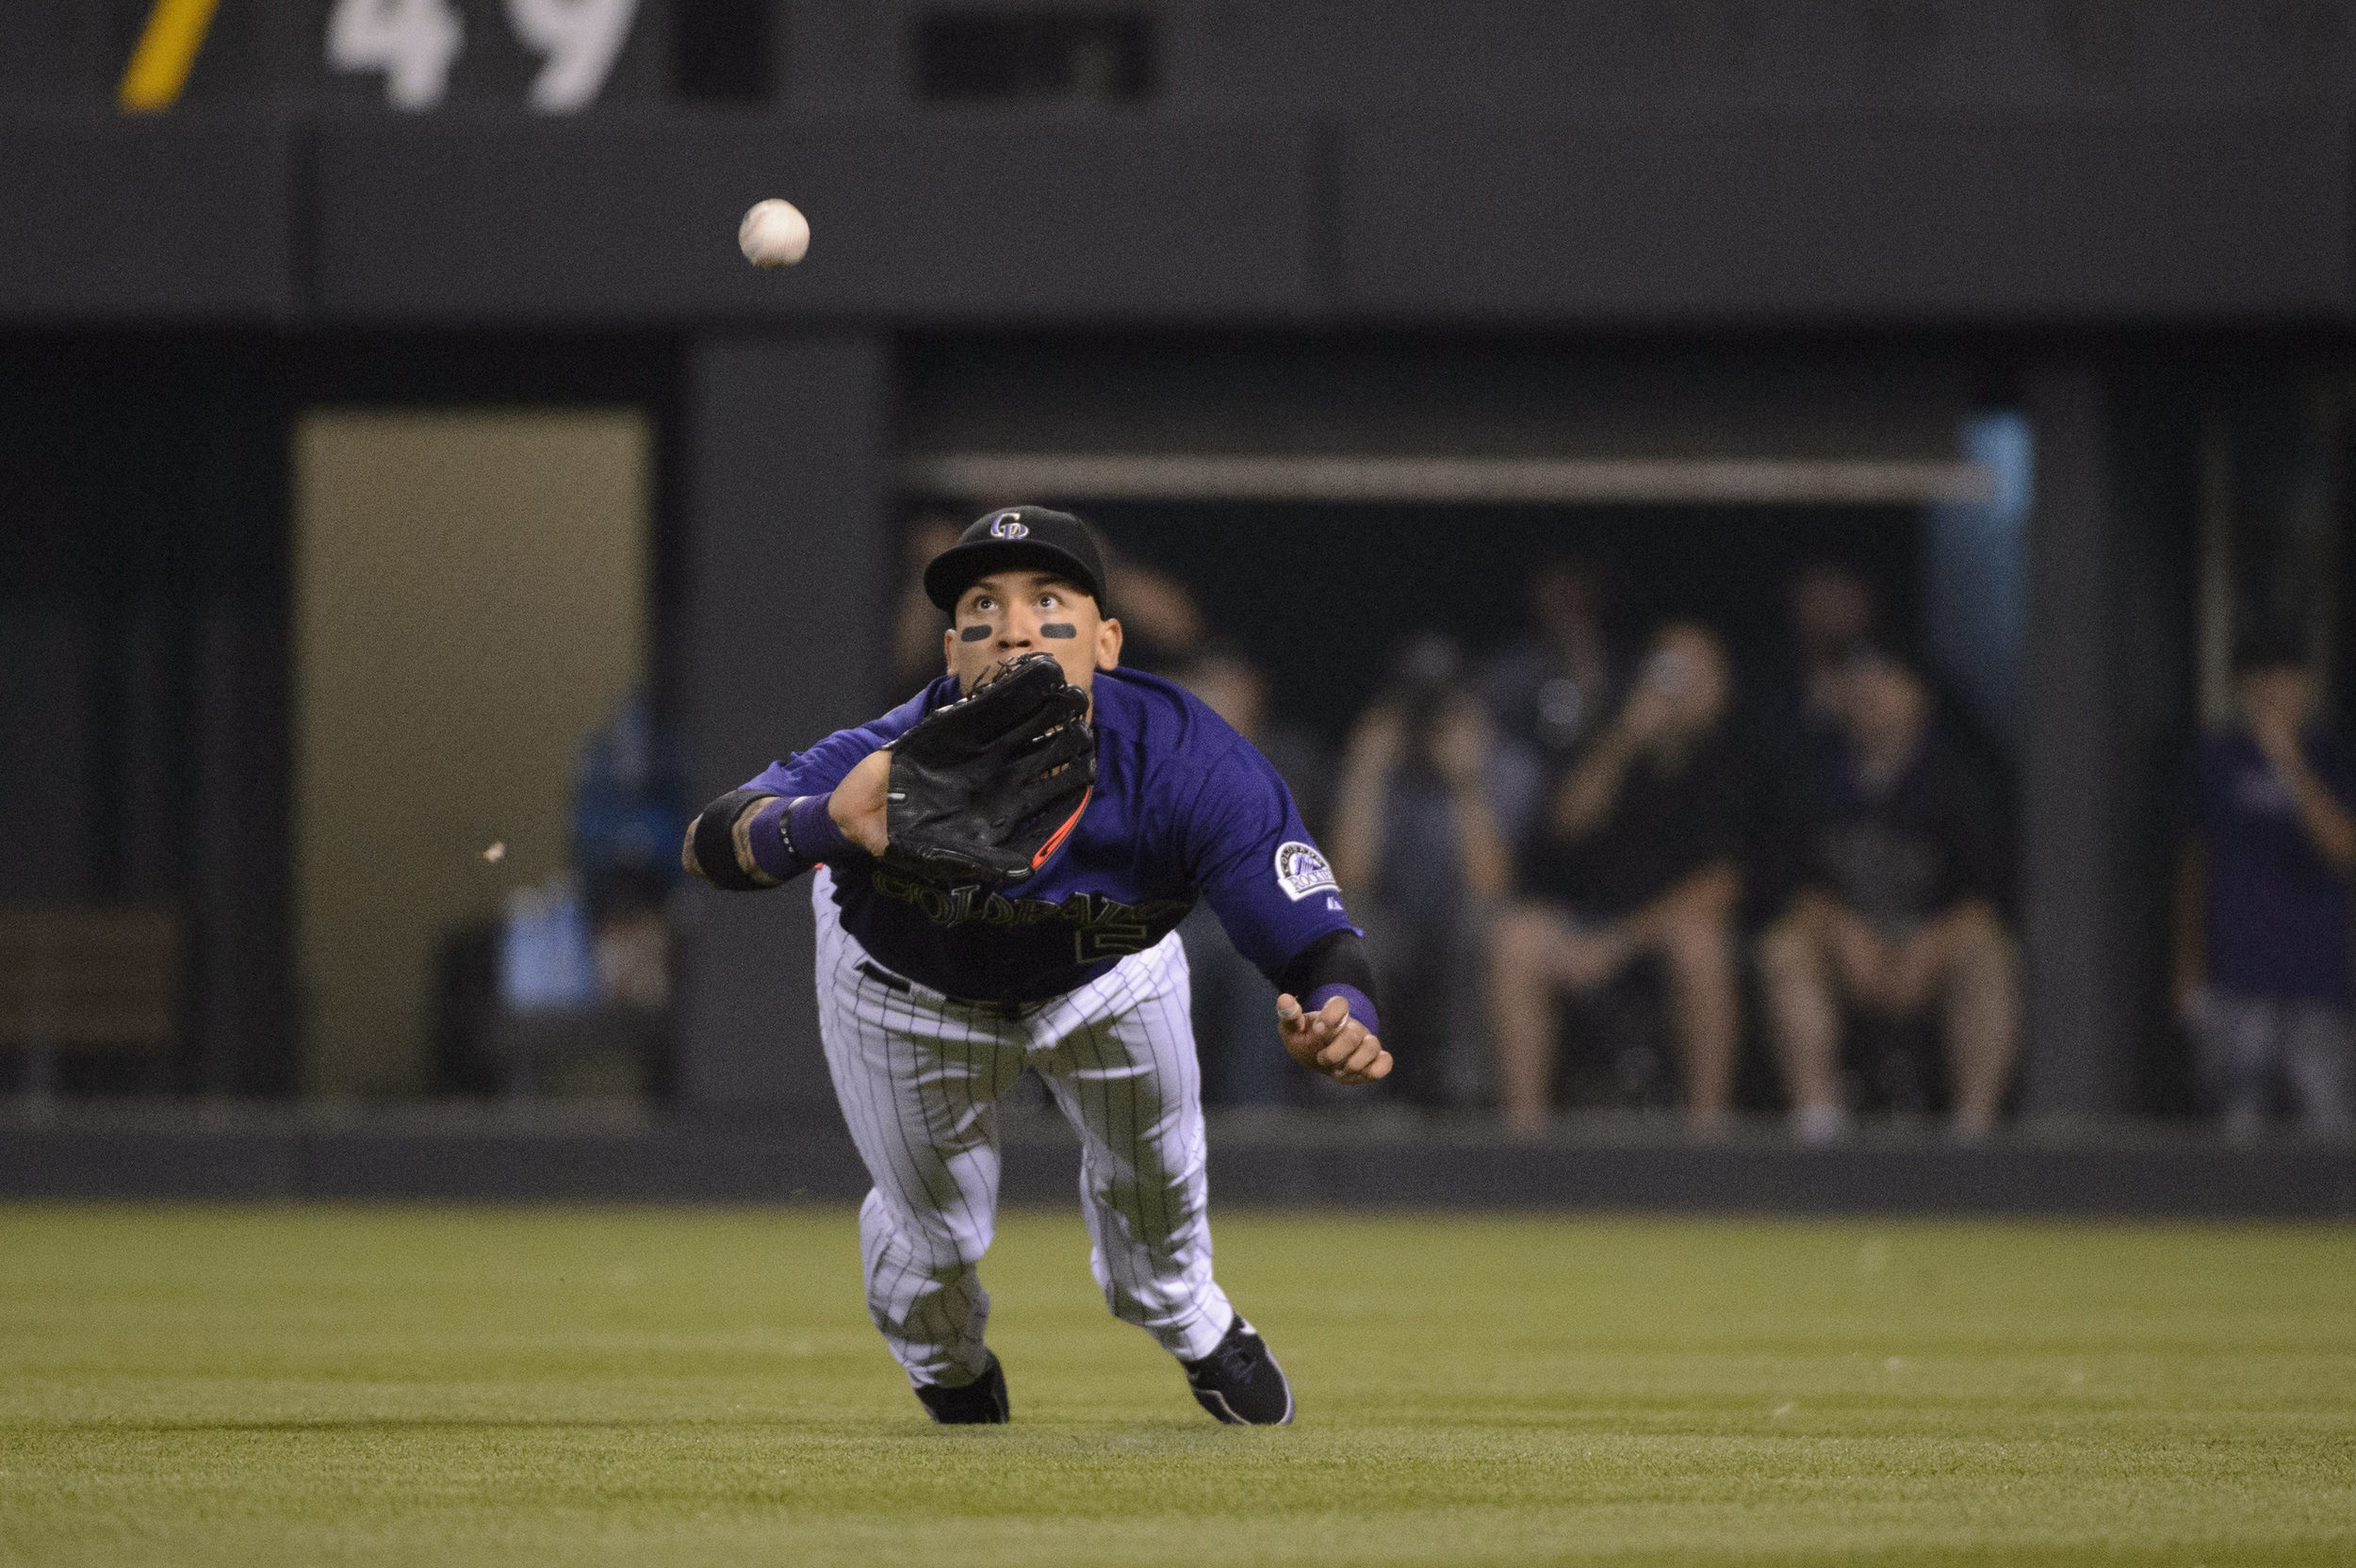 Rockies' outfielder Carlos Gonzalez makes a diving catch